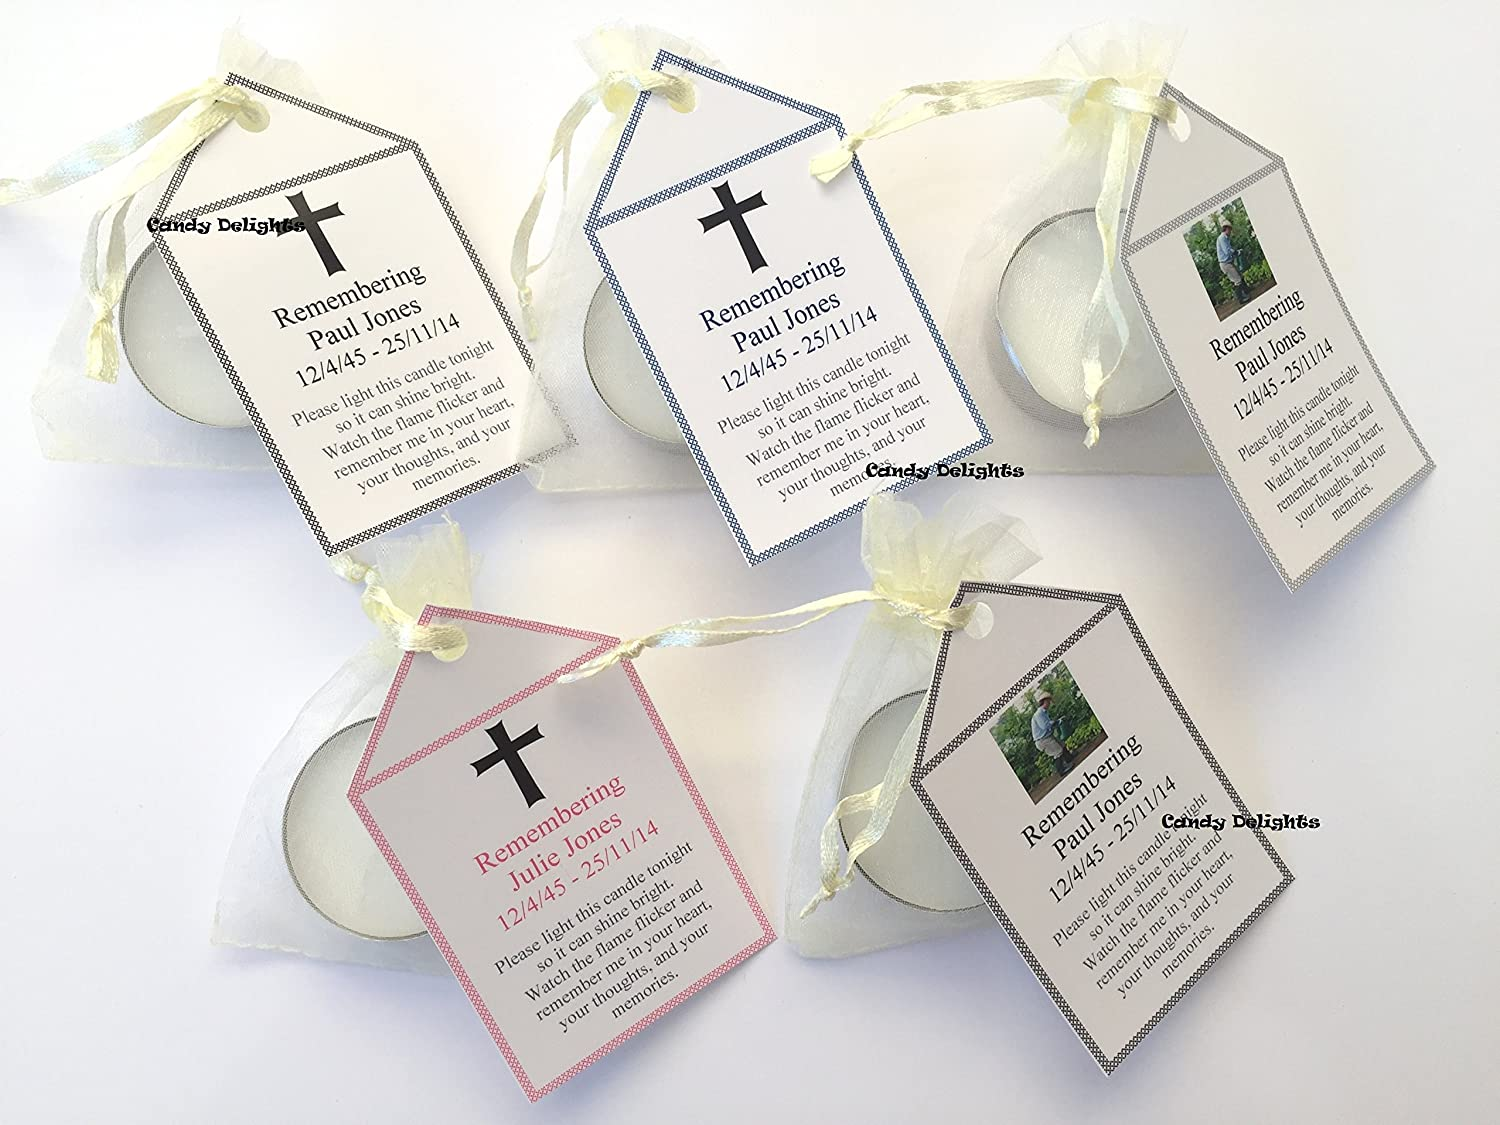 50 Remembrance, Funeral DIY Organza bag, Candle & Personalised Tag Favours Bespoke Candy Delights